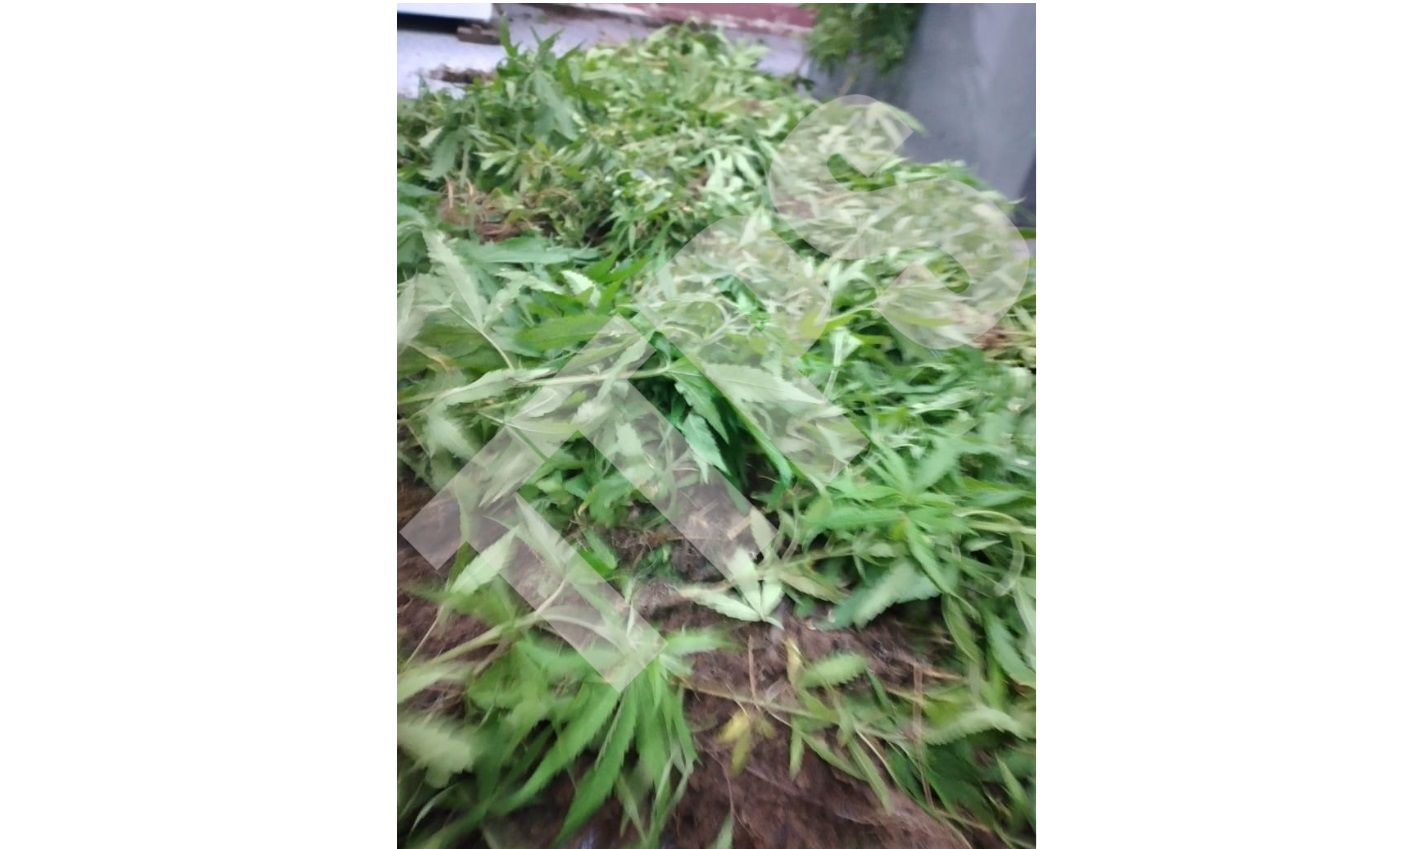 Seized: Some of the marijuana plants recovered by police in Arima.